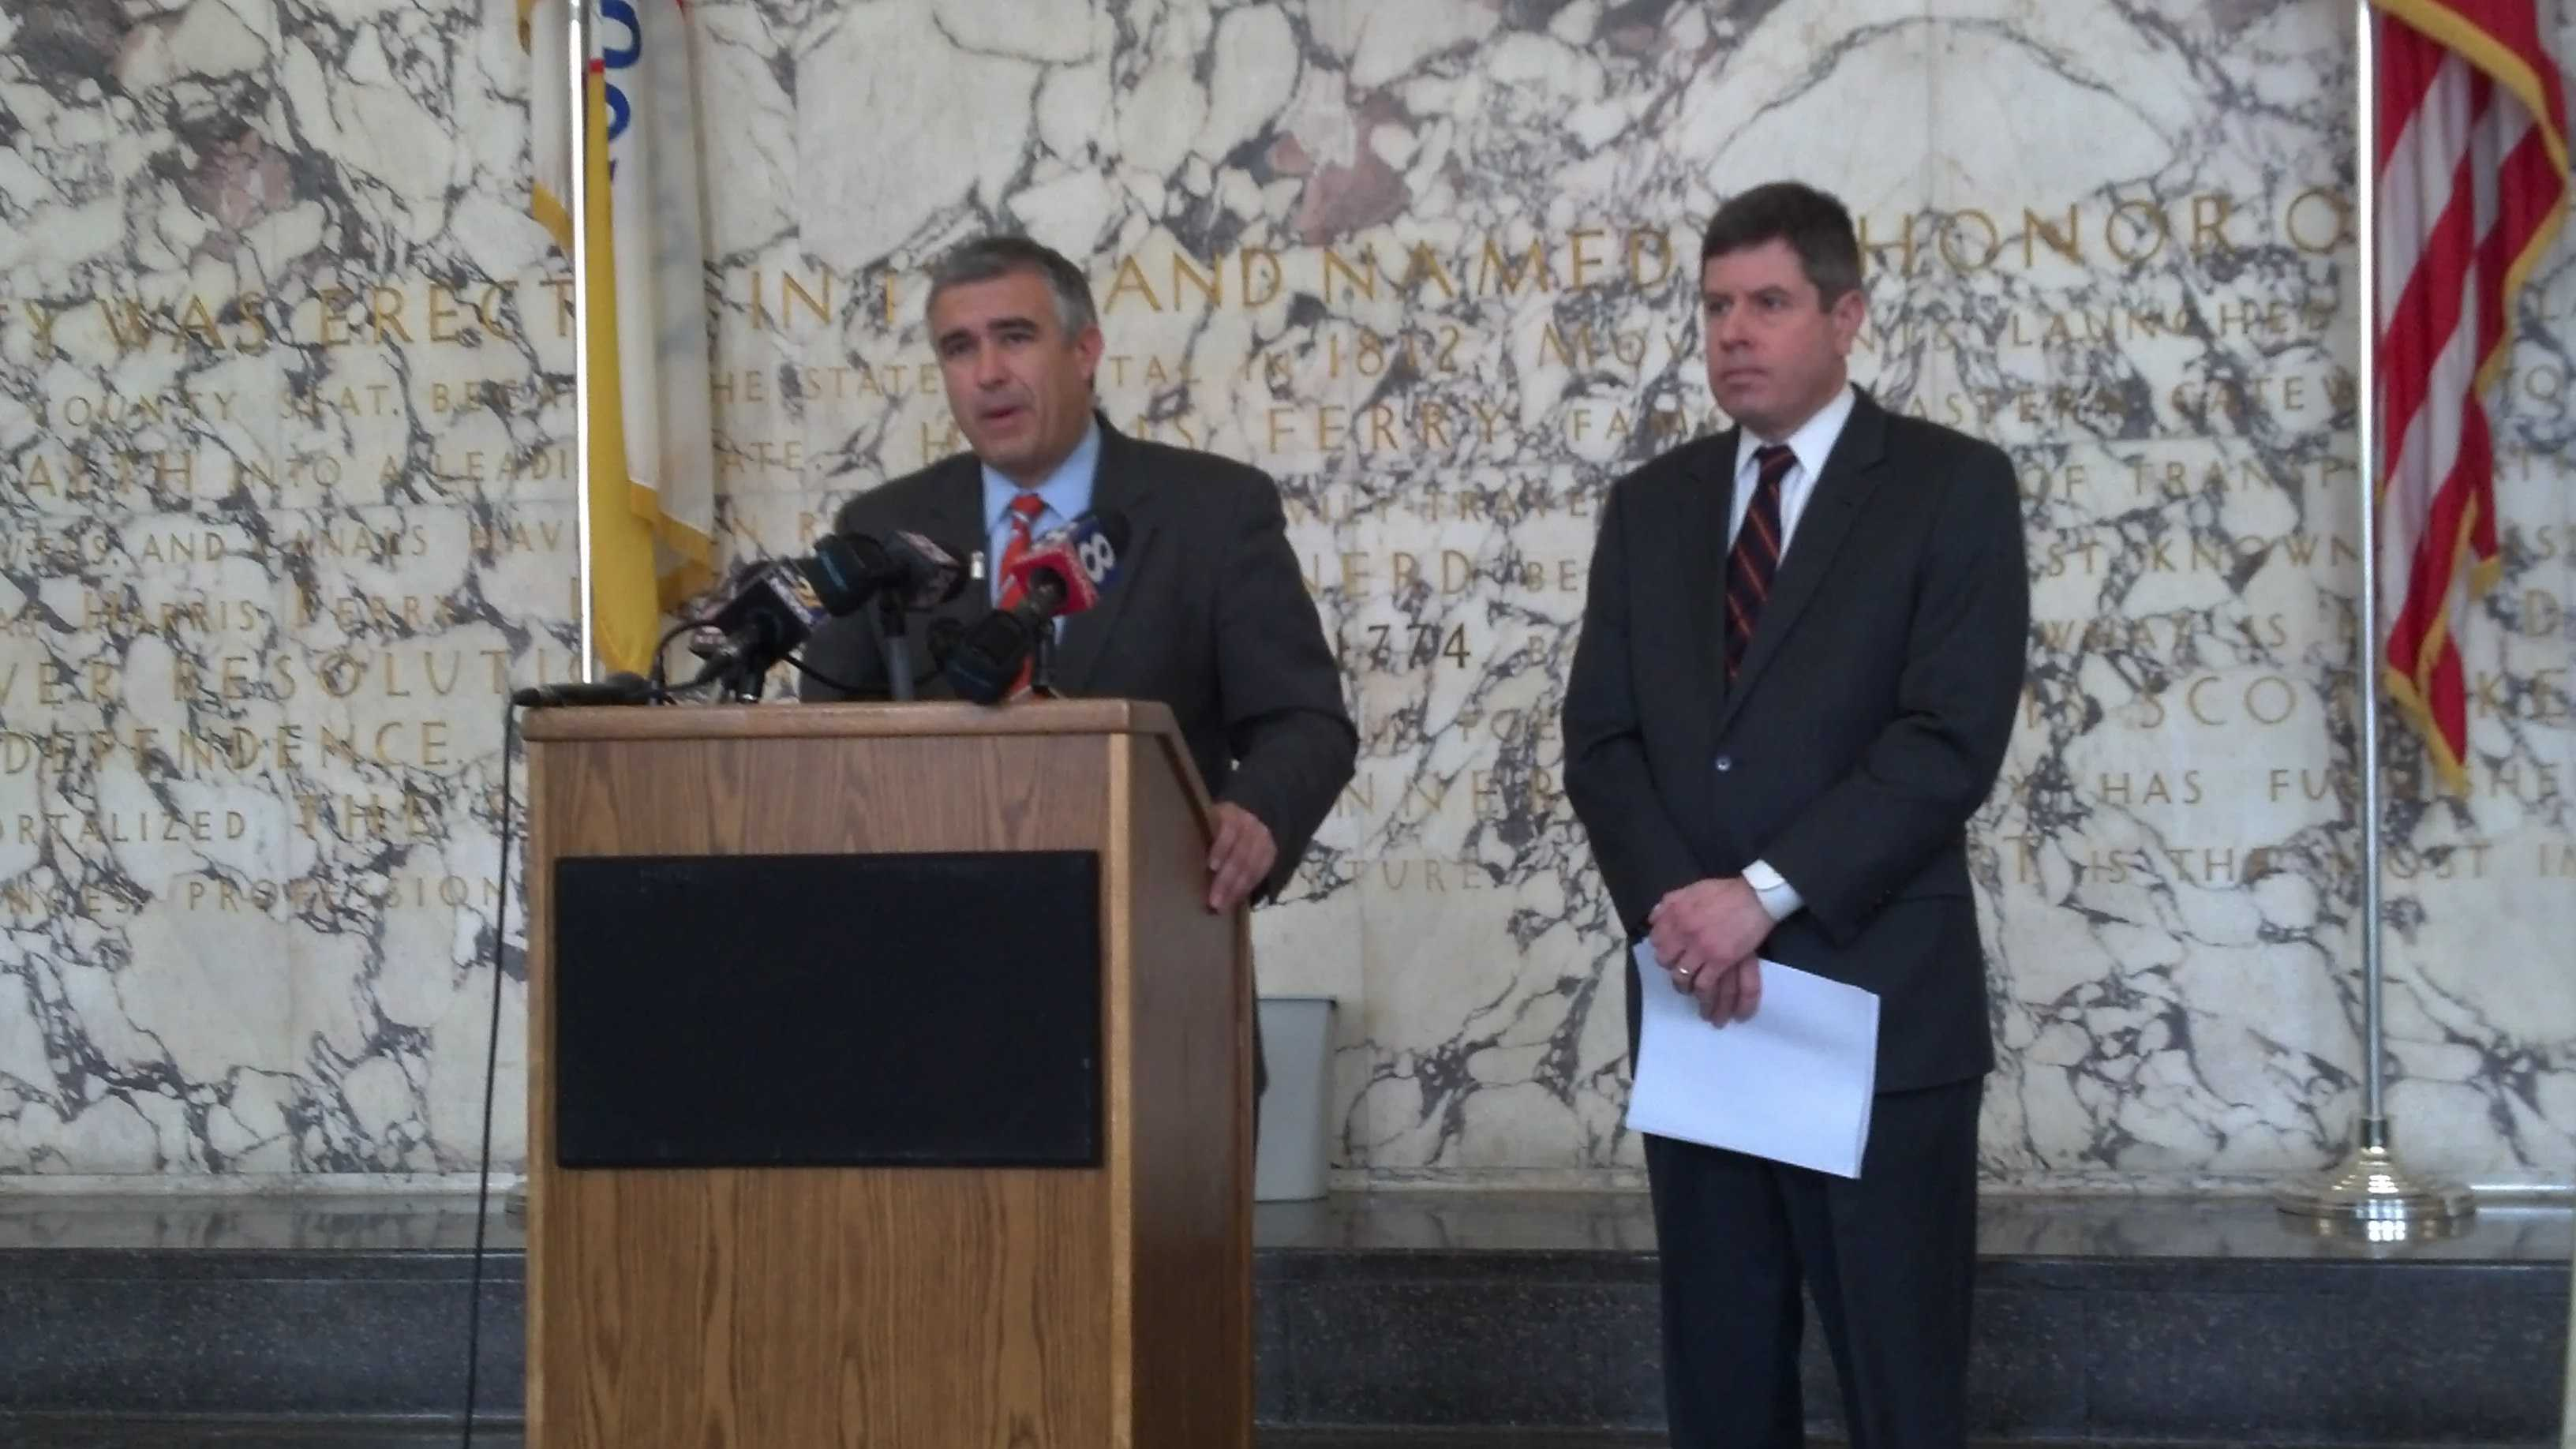 Dauphin County Distirct Attorney Ed Marsico announces the findings of the grand jury investigation.